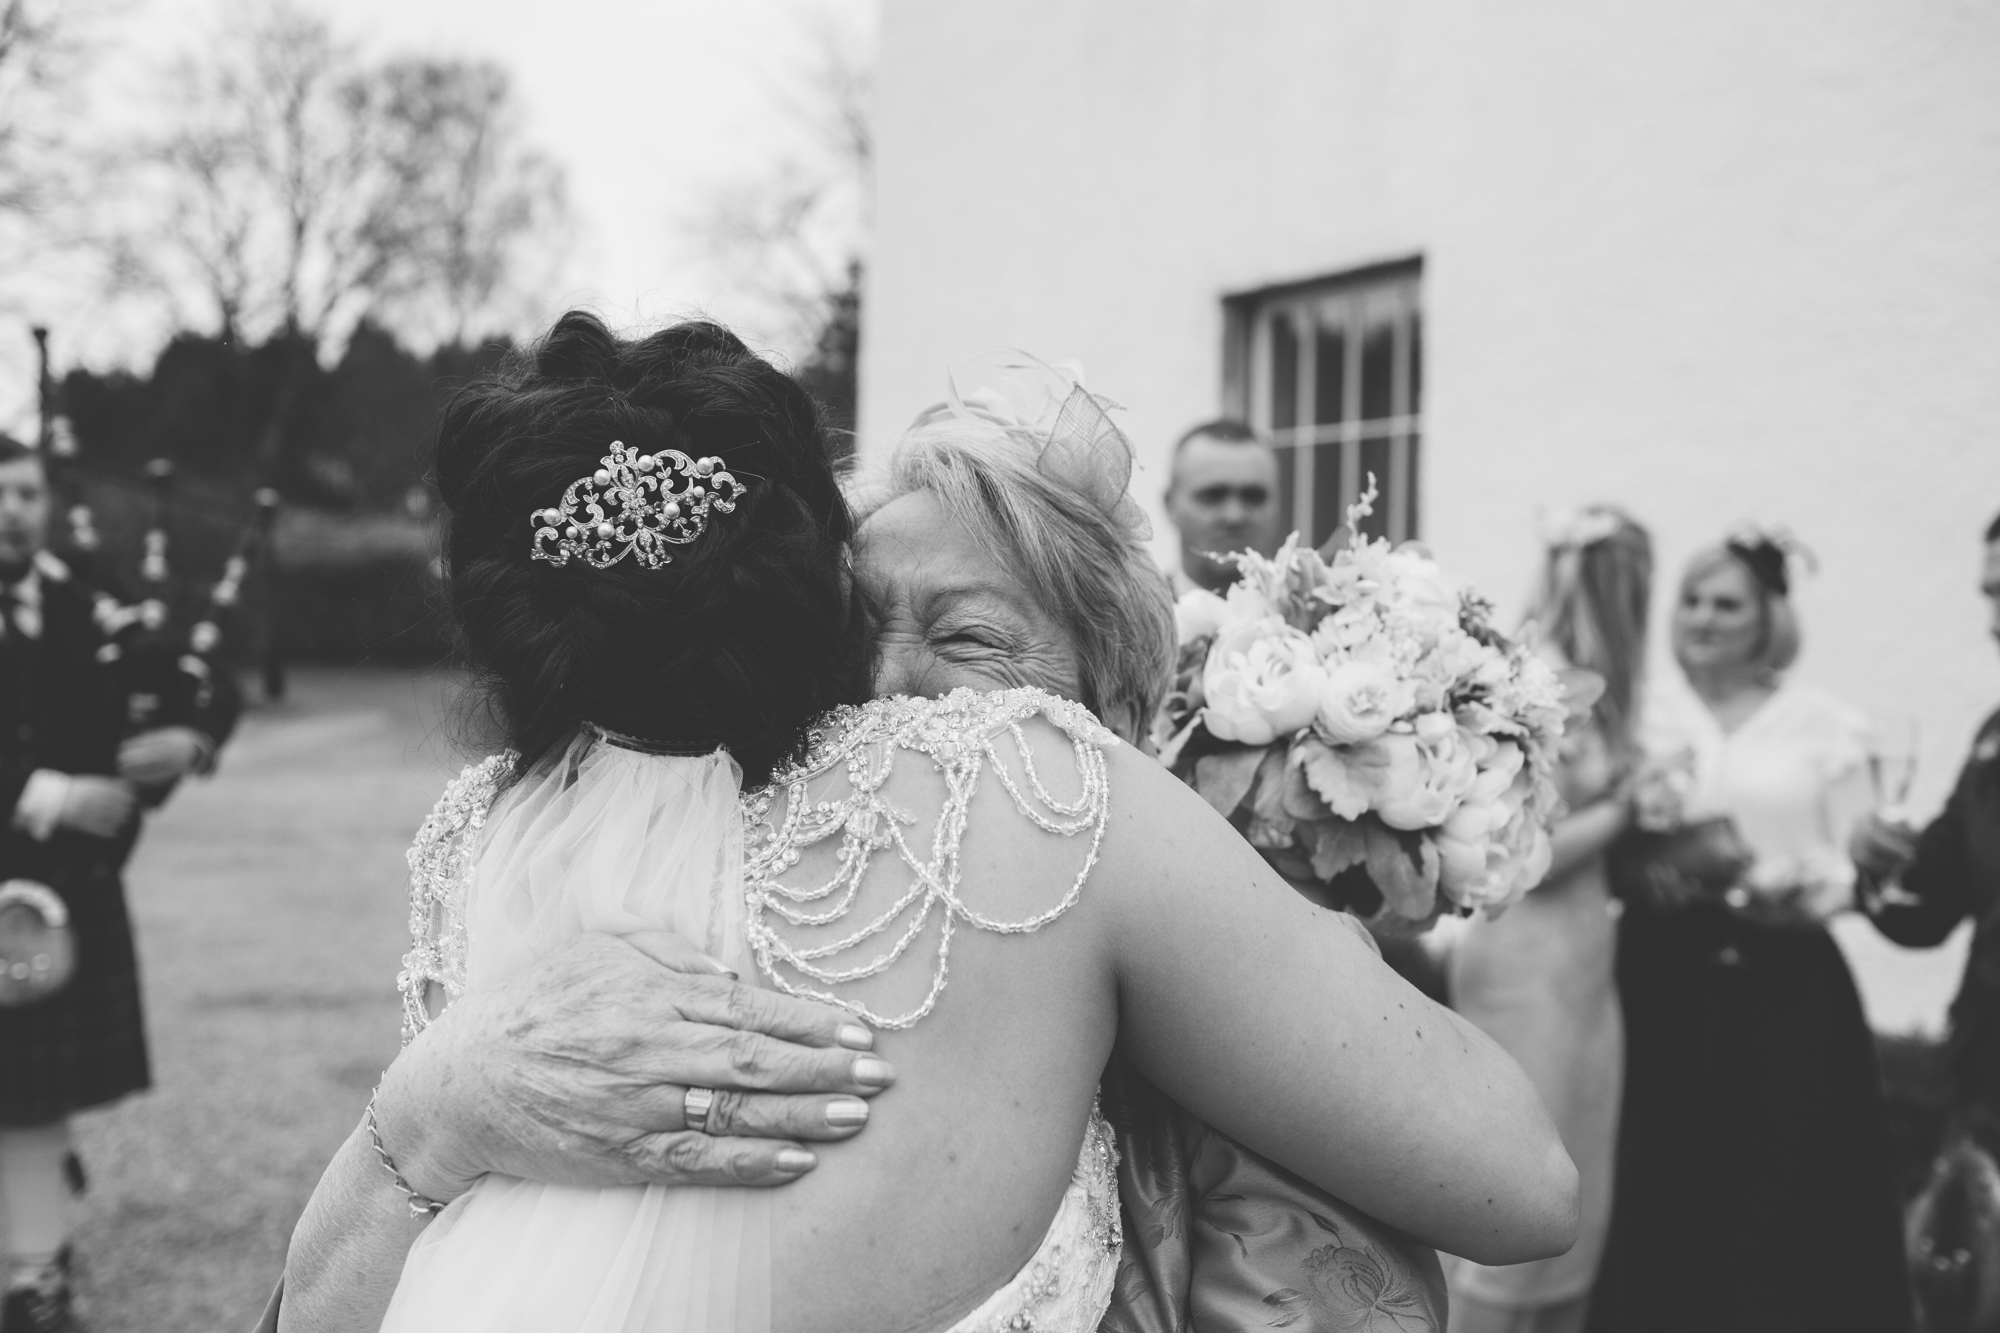 logie country house wedding, Aberdeenshire wedding photography, natural wedding photography Scotland, Scottish wedding photographer, alternative wedding photography Scotland, wedding photographer aberdeen, wedding photographers in aberdeen, aberdeen wedding photographers